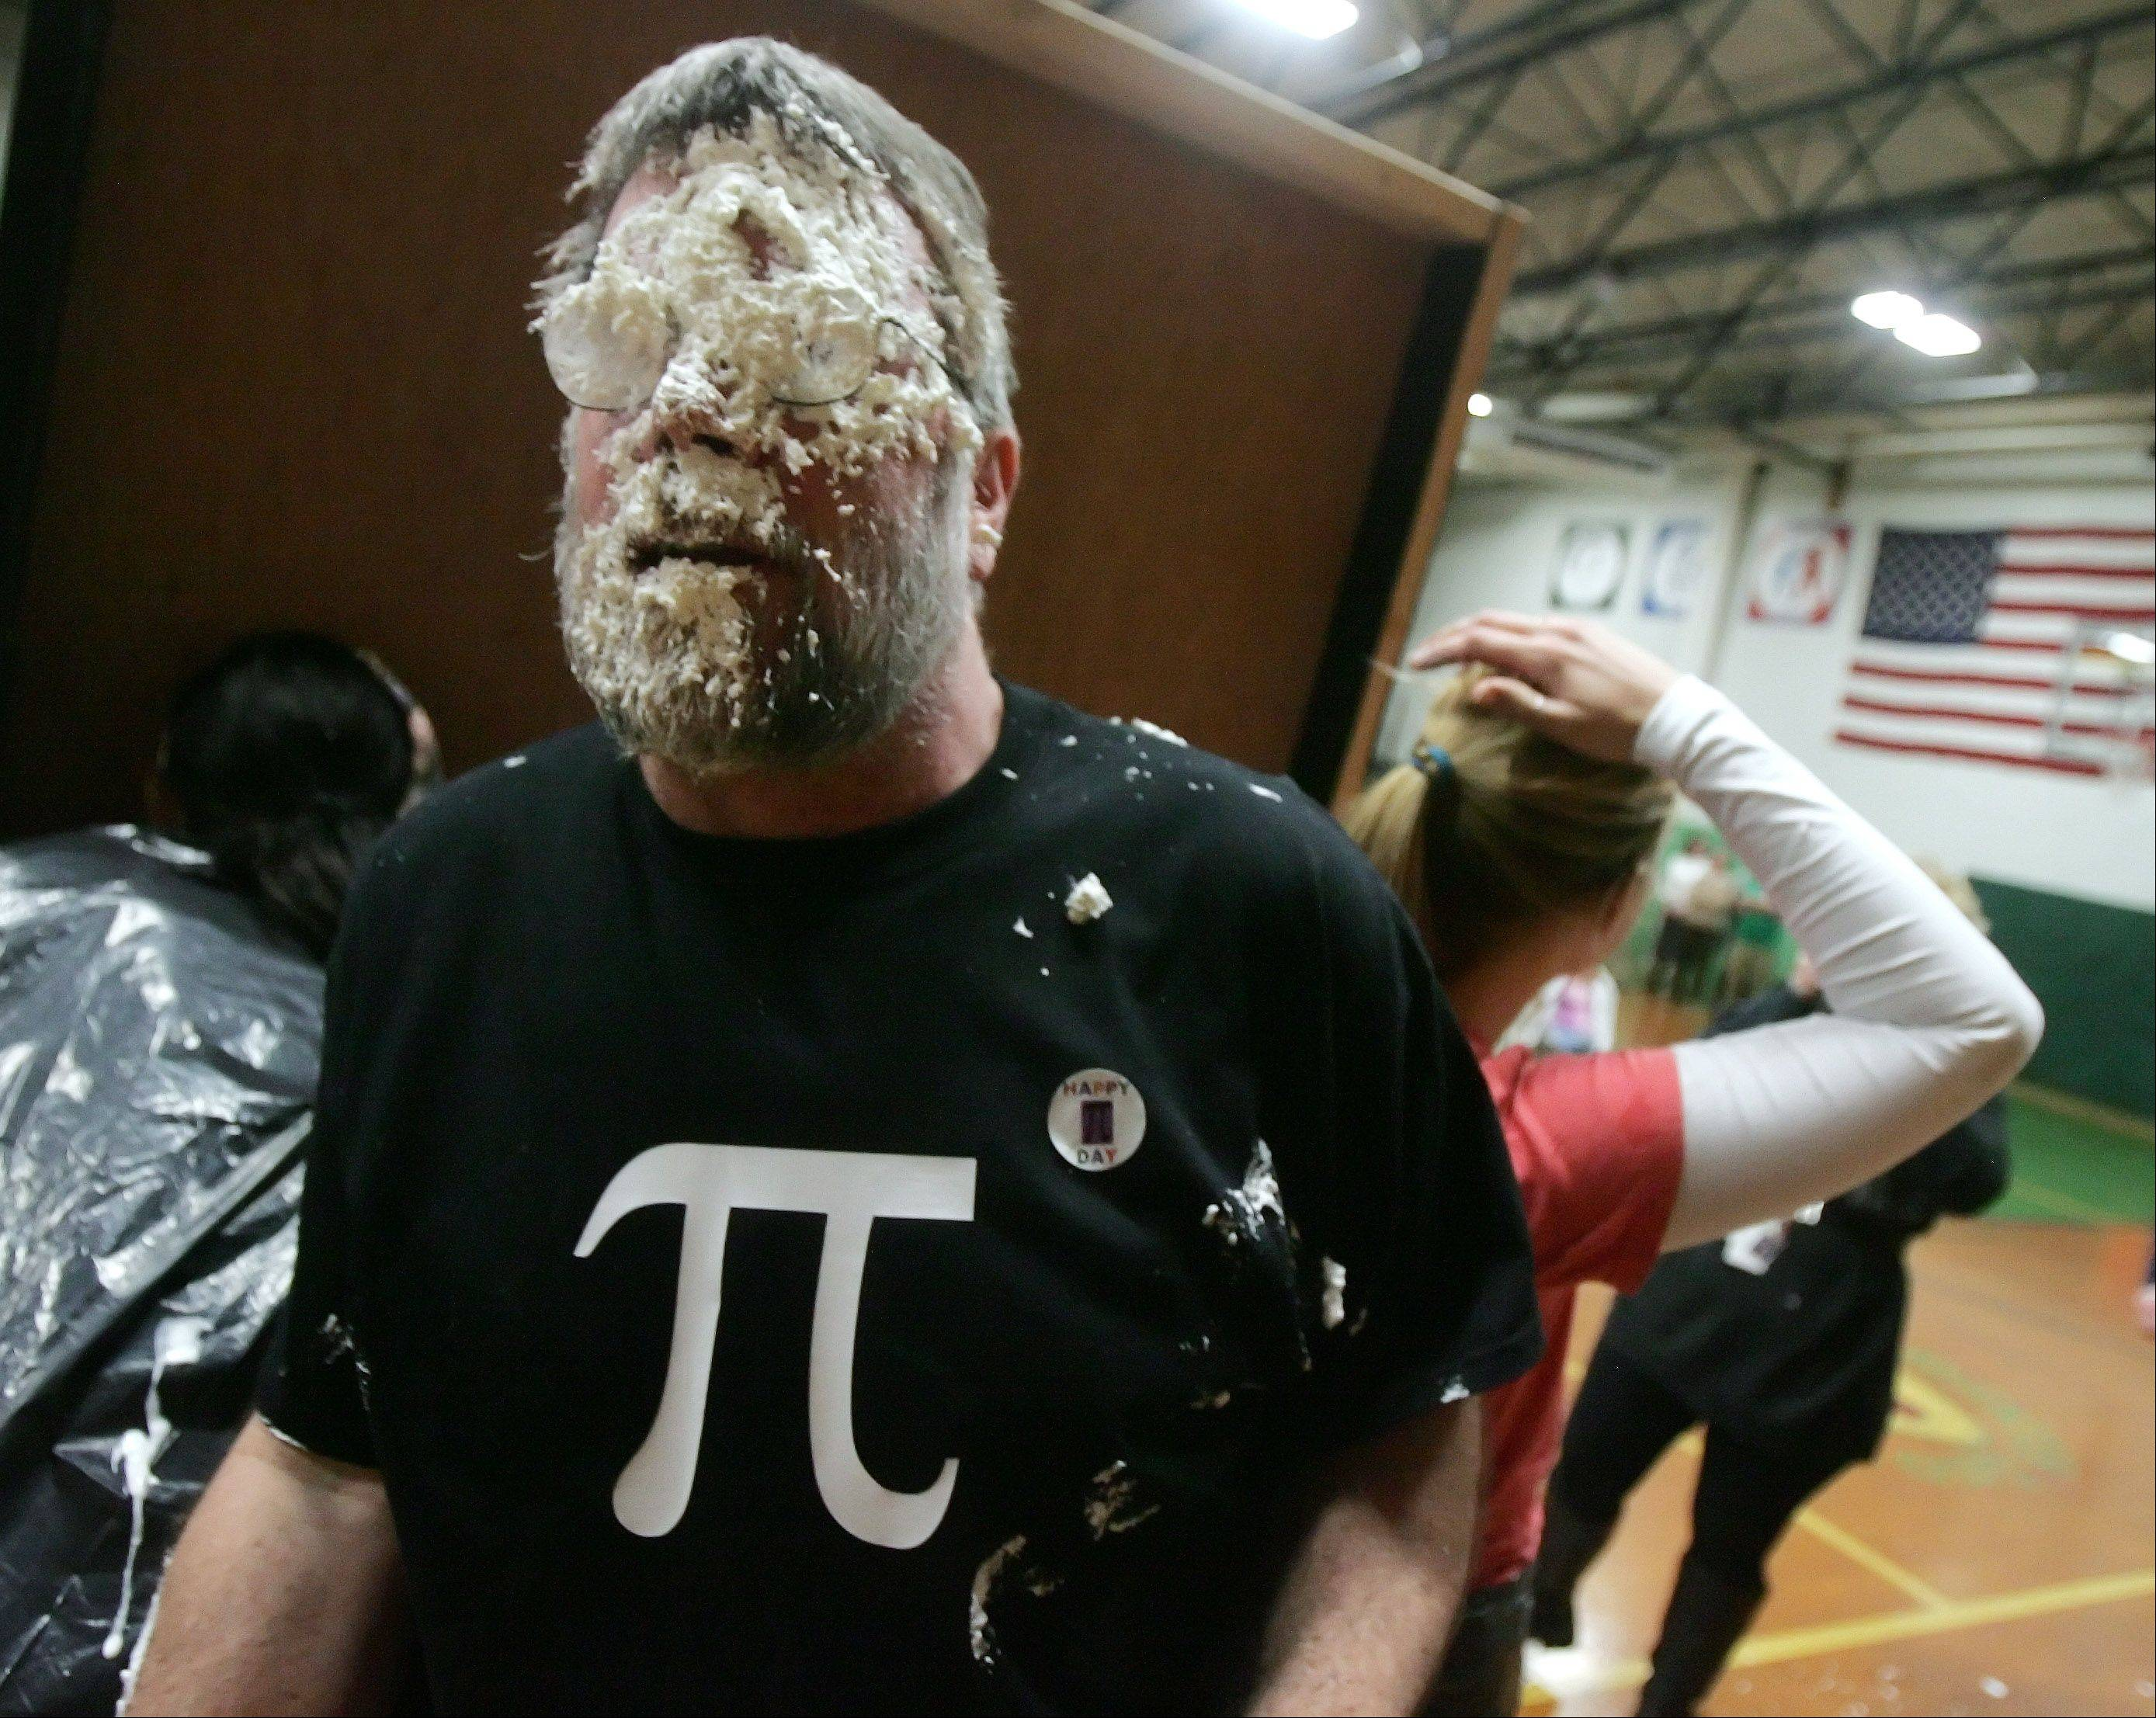 Math teacher Don Doll is covered in whip cream after a student threw a pie in his face at Fremont Middle School in Mundelein Thursday as part of a Pi Day fundraiser for St. Jude Children's Research Hospital.